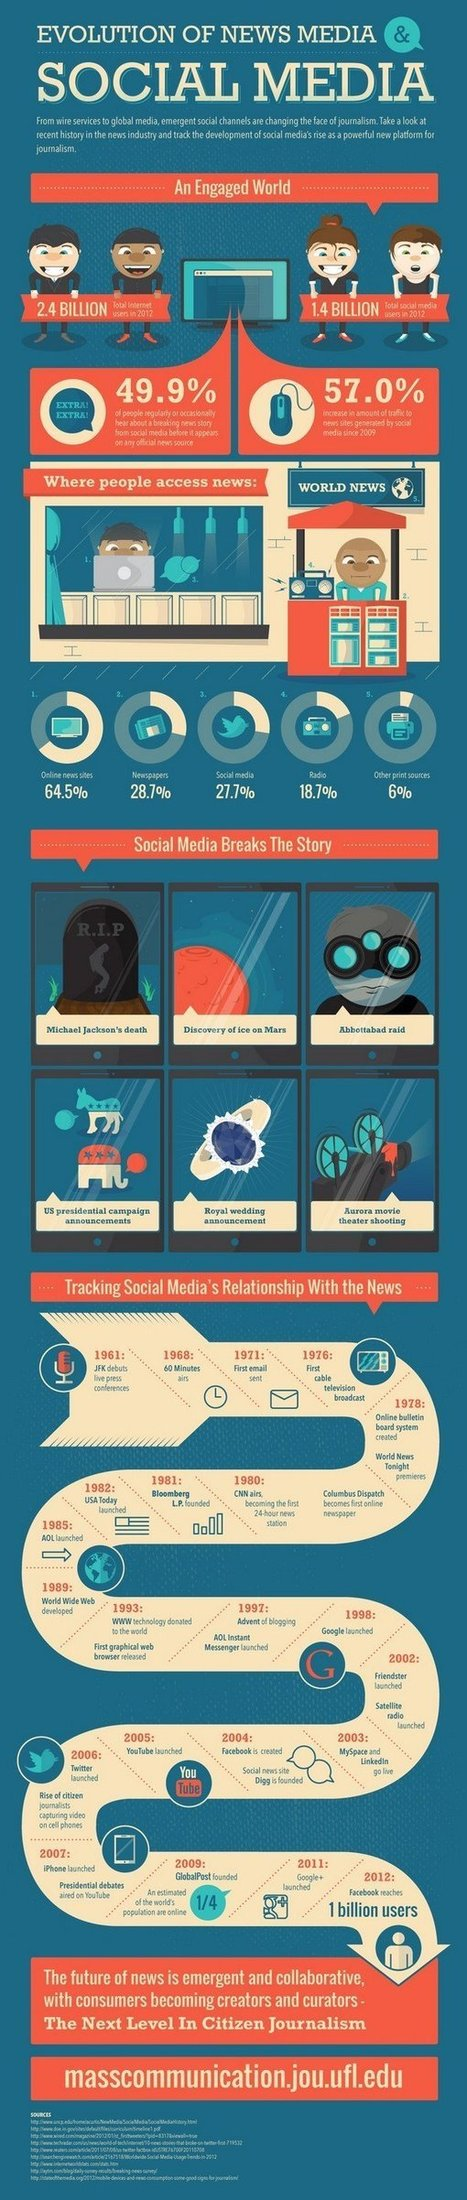 Evolution of News Media & #SocialMedia - #Infographic | Digital Marketing | Scoop.it